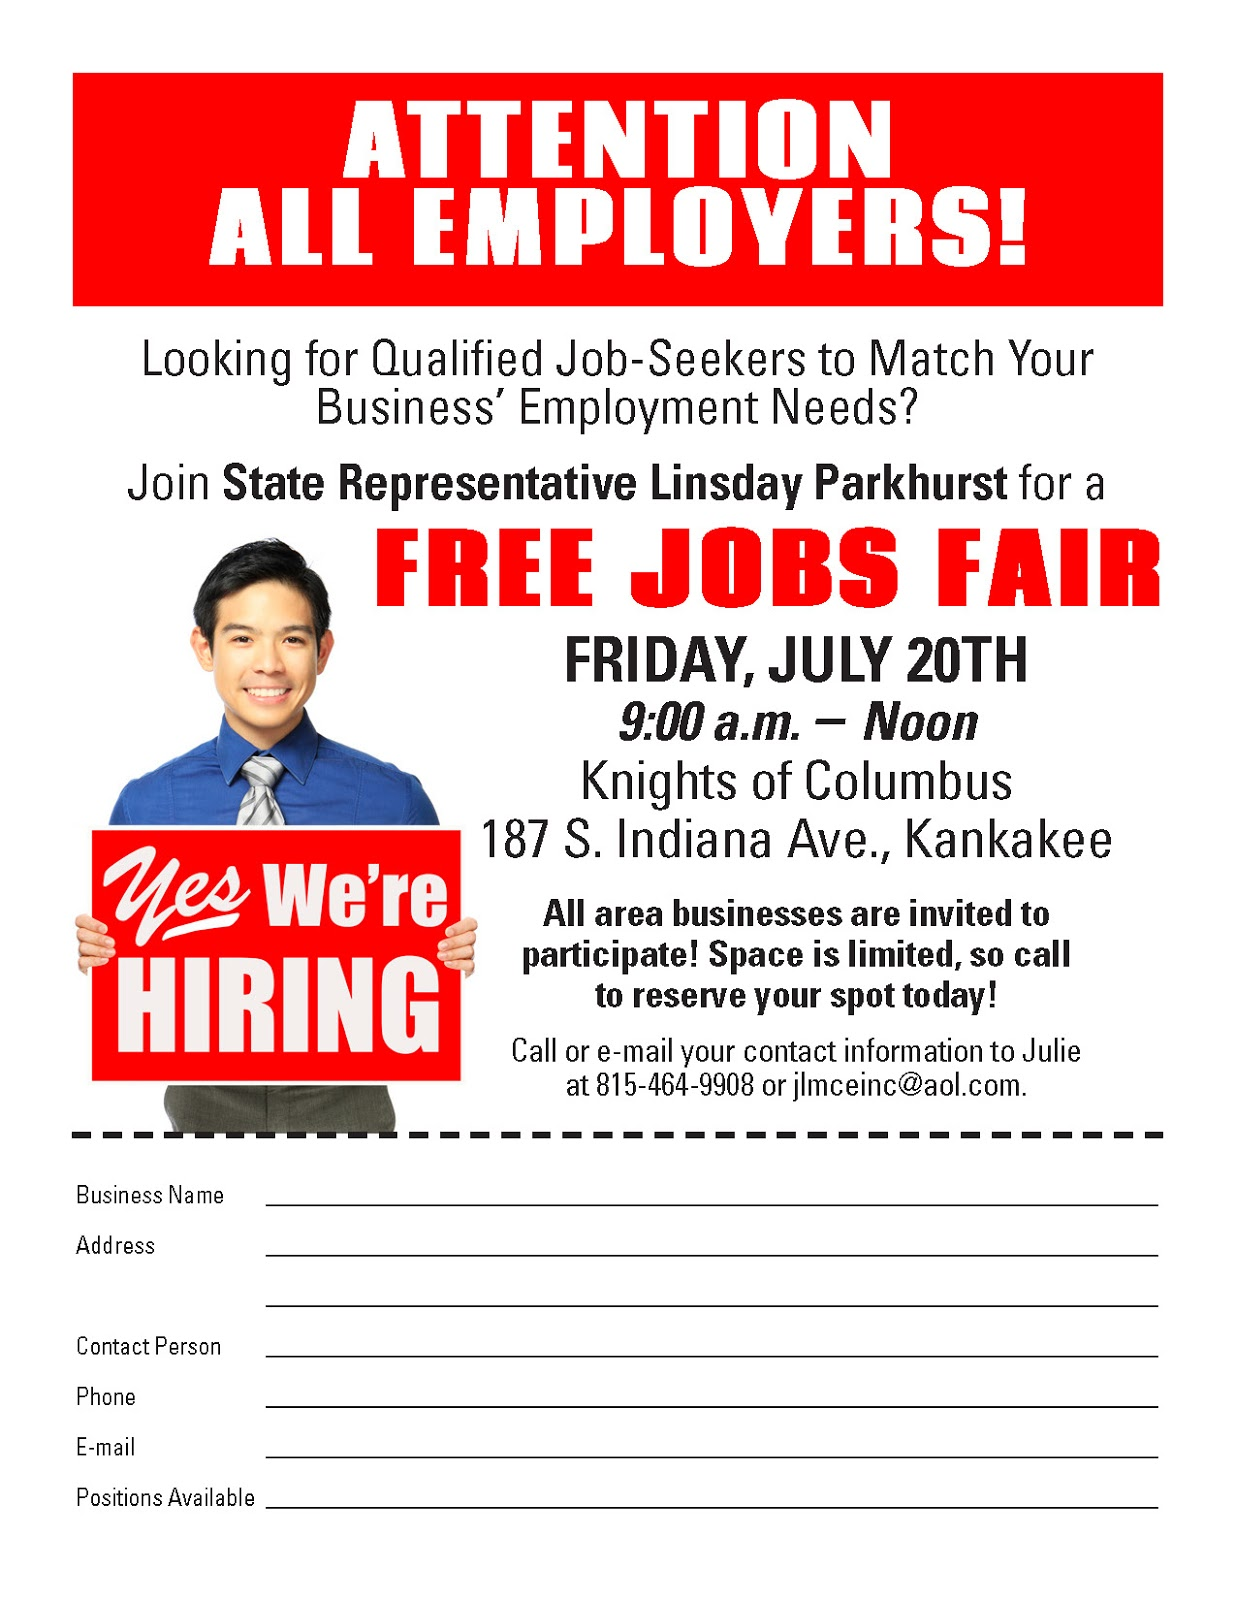 http://www.repparkhurst.com/2018/03/seeking-local-employers-jobs-fair-july.html